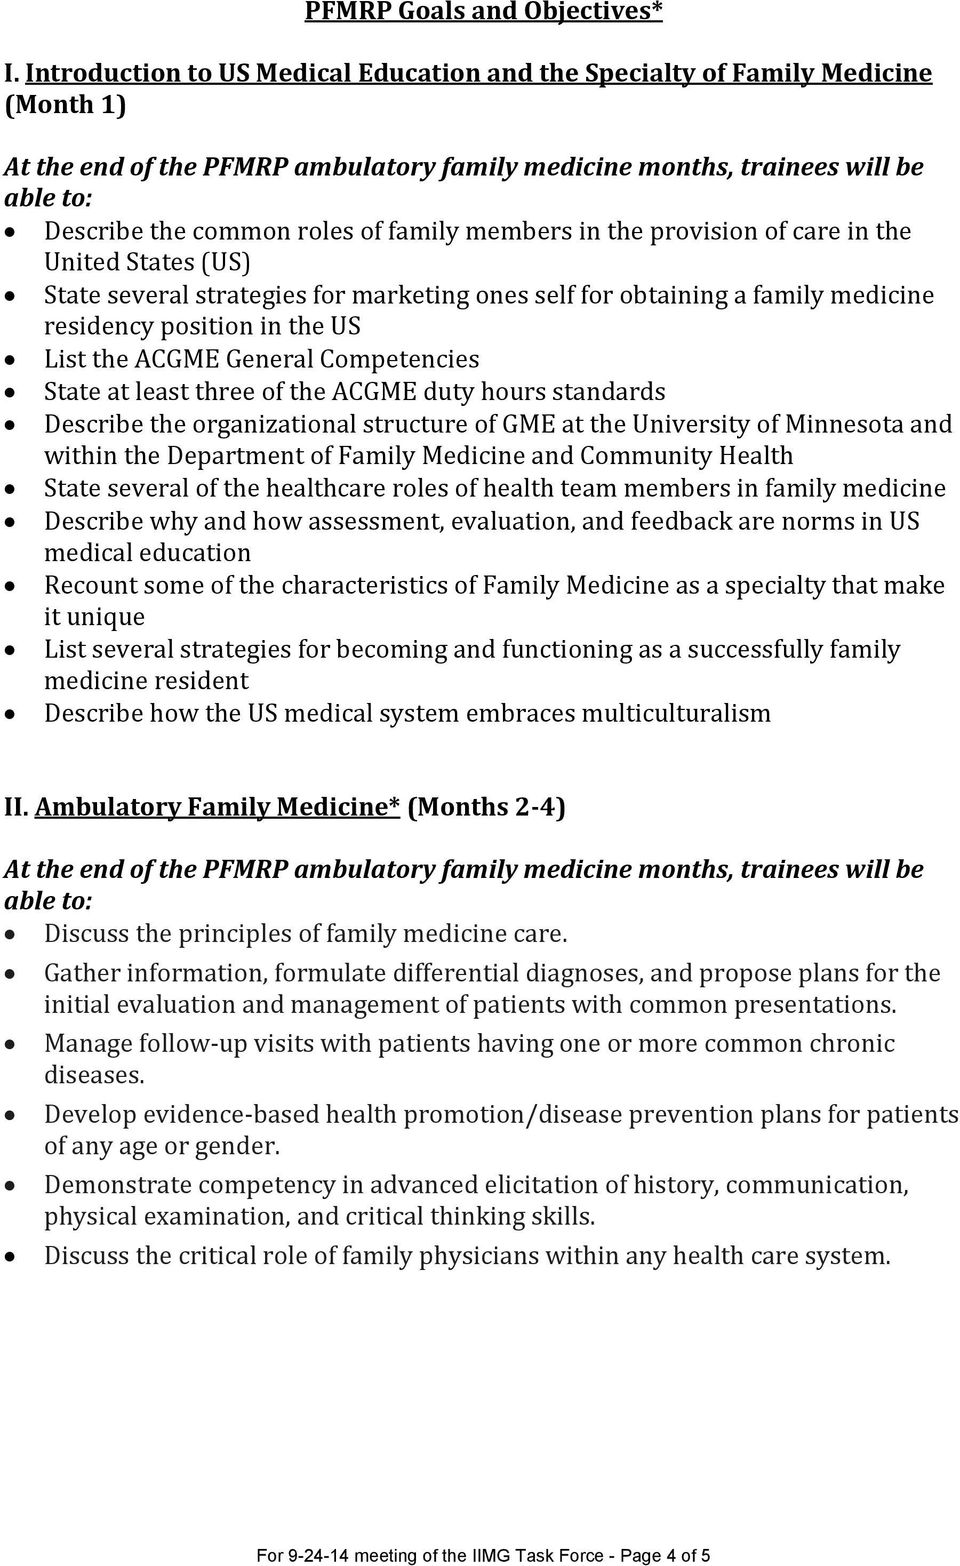 family members in the provision of care in the United States (US) State several strategies for marketing ones self for obtaining a family medicine residency position in the US List the ACGME General